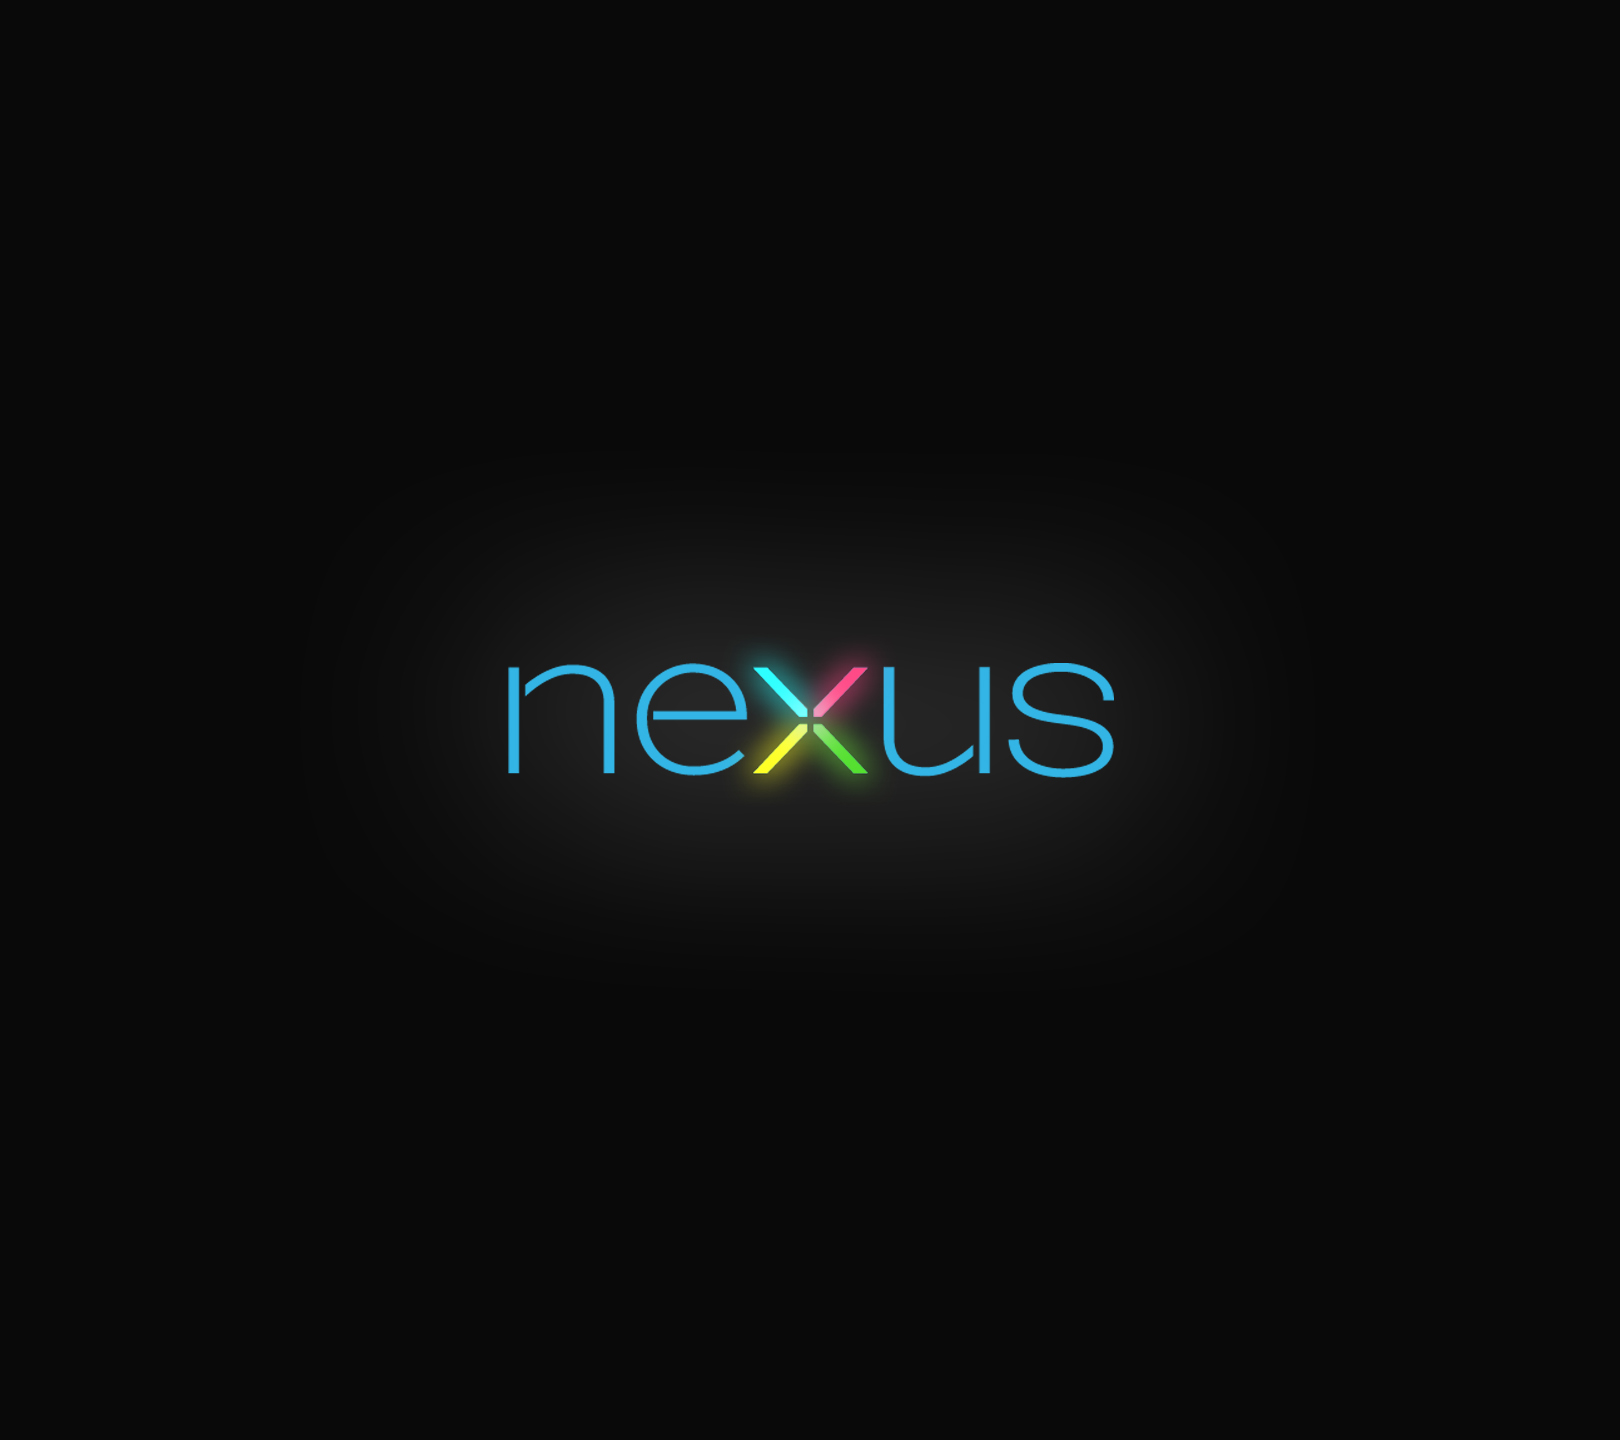 nexus wallpaper